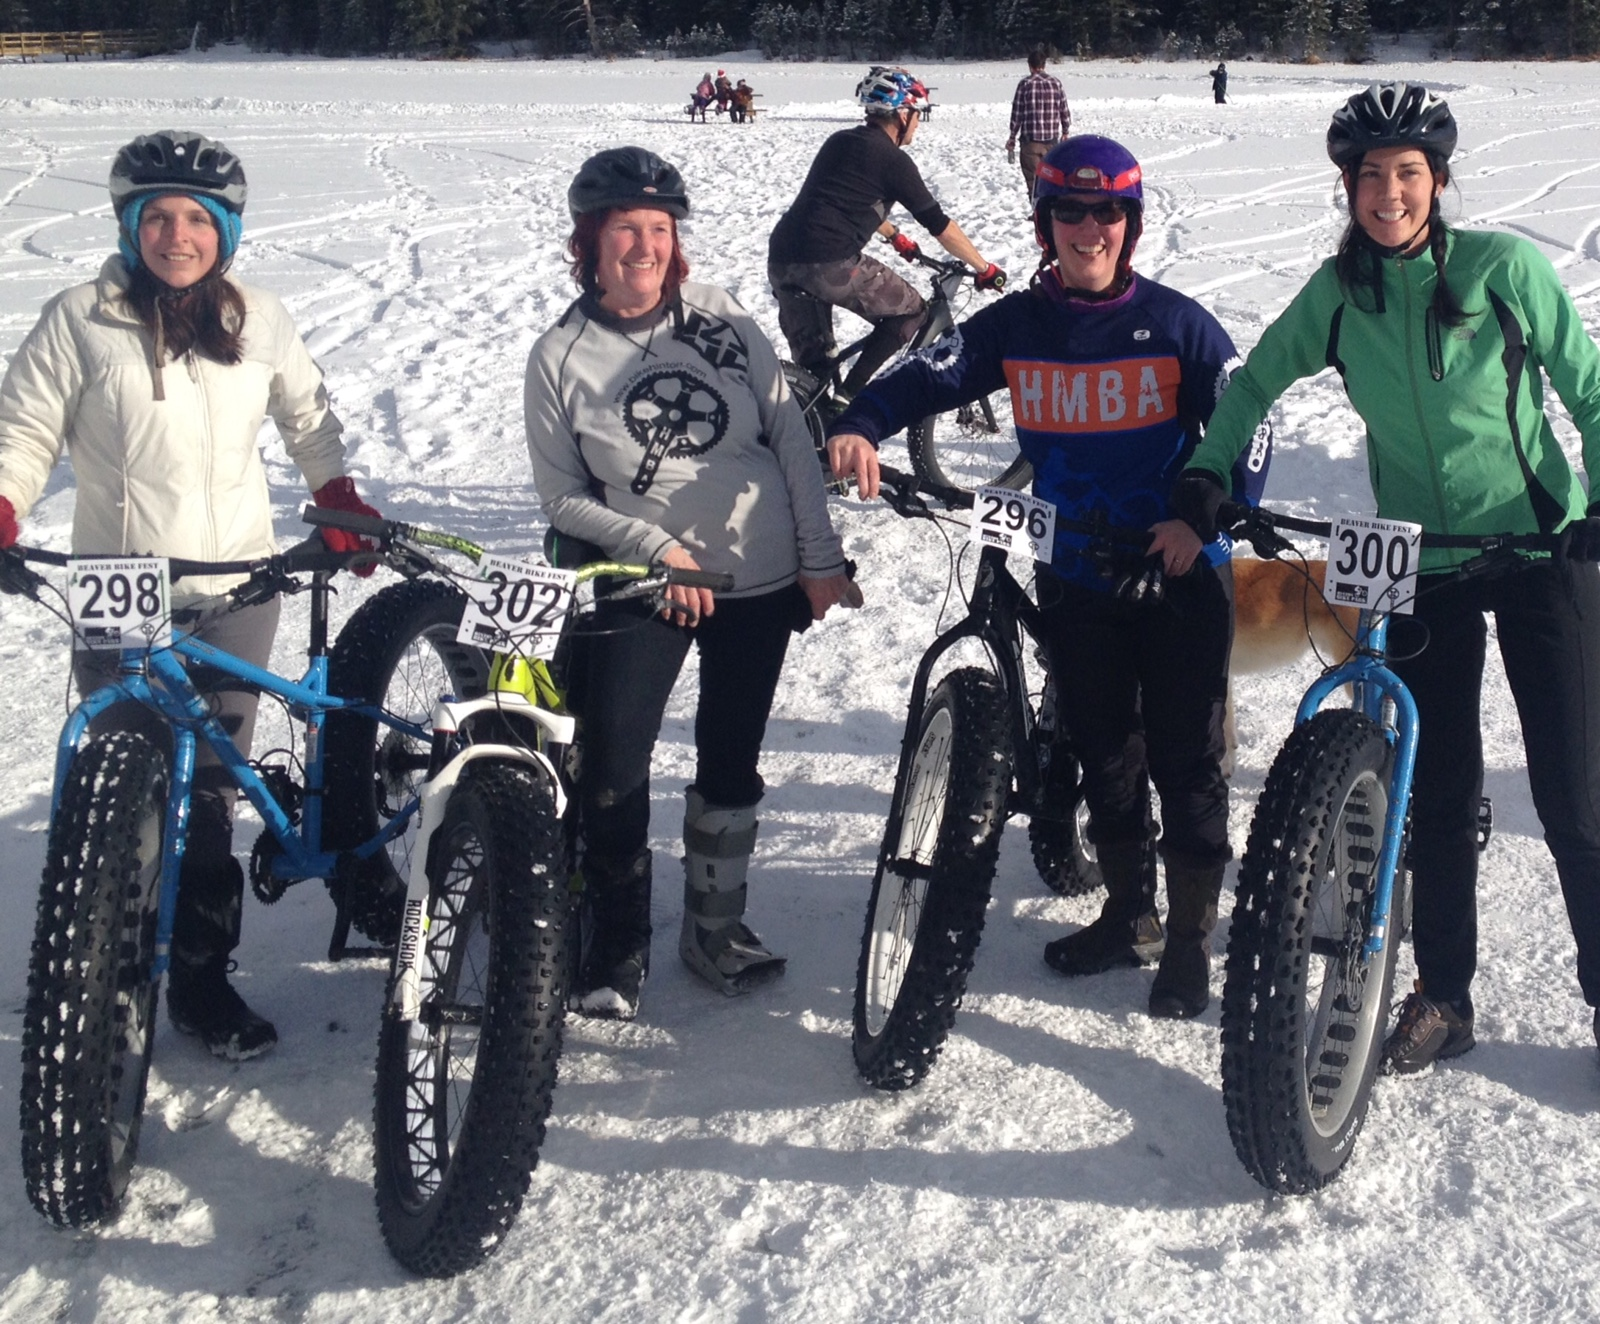 Gals on Fat Bikes